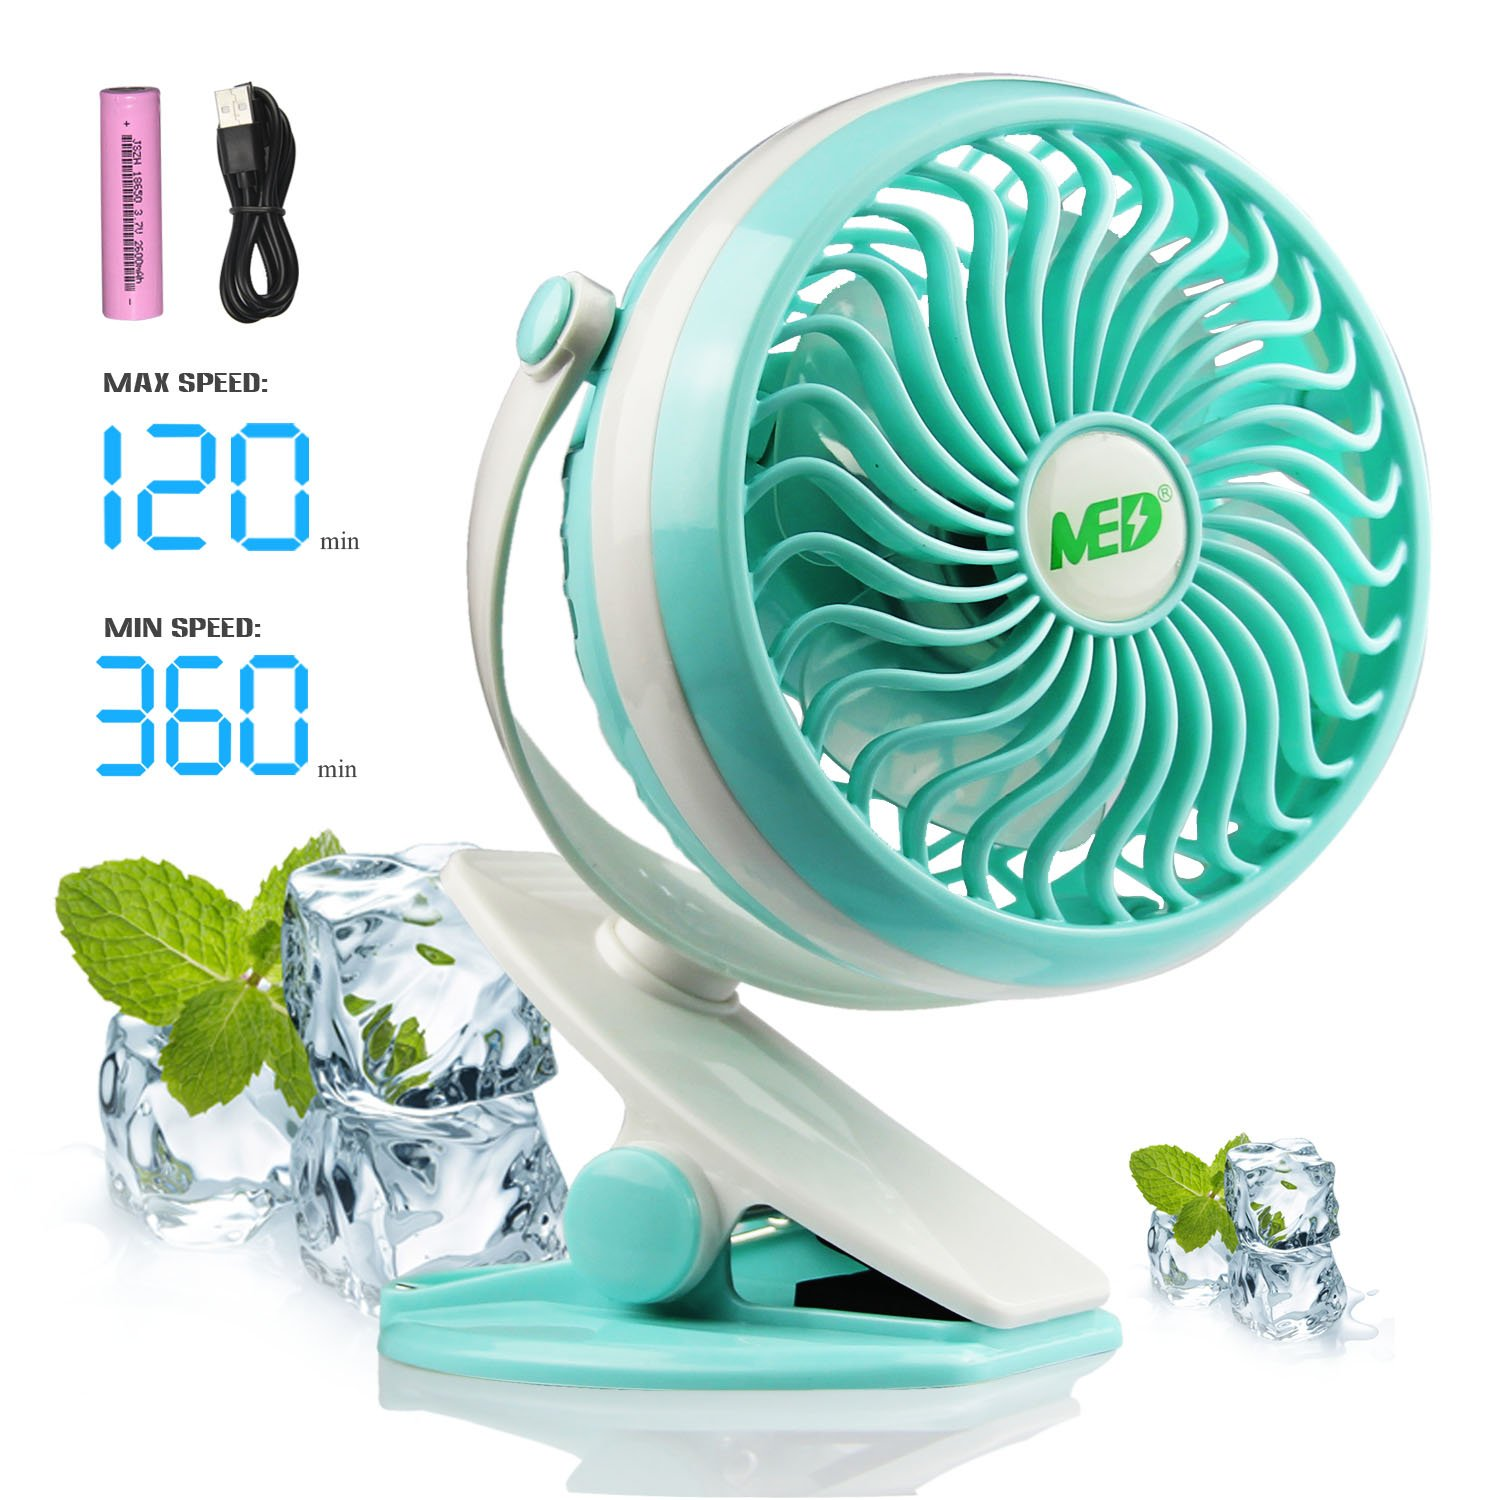 Baby Stroller Mini Battery Operated Clip Fan,Small Portable Fan Powered by Rechargeable Battery or USB Desk Personal Car Gym Workout Camping (green)